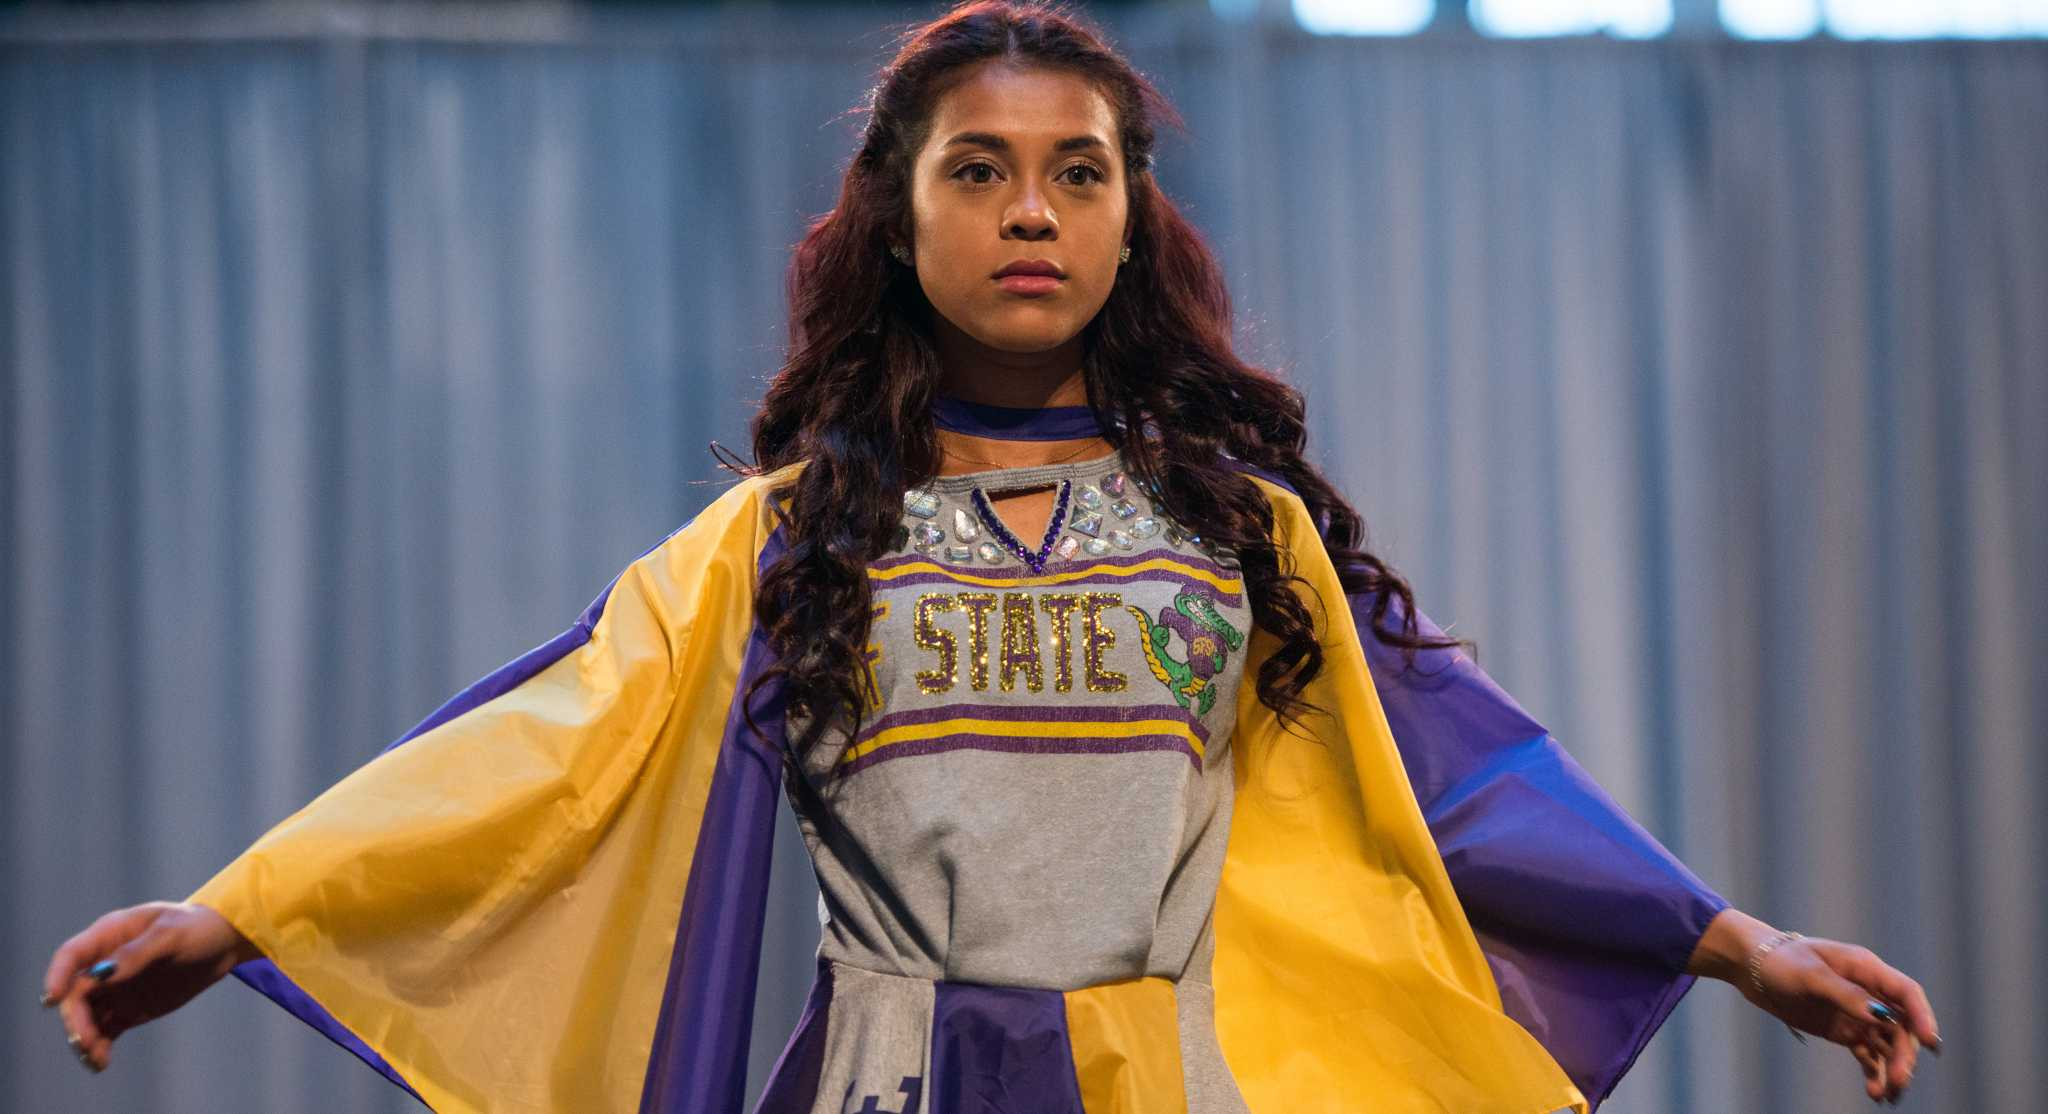 Student's designs take the runway in 'Emerge'